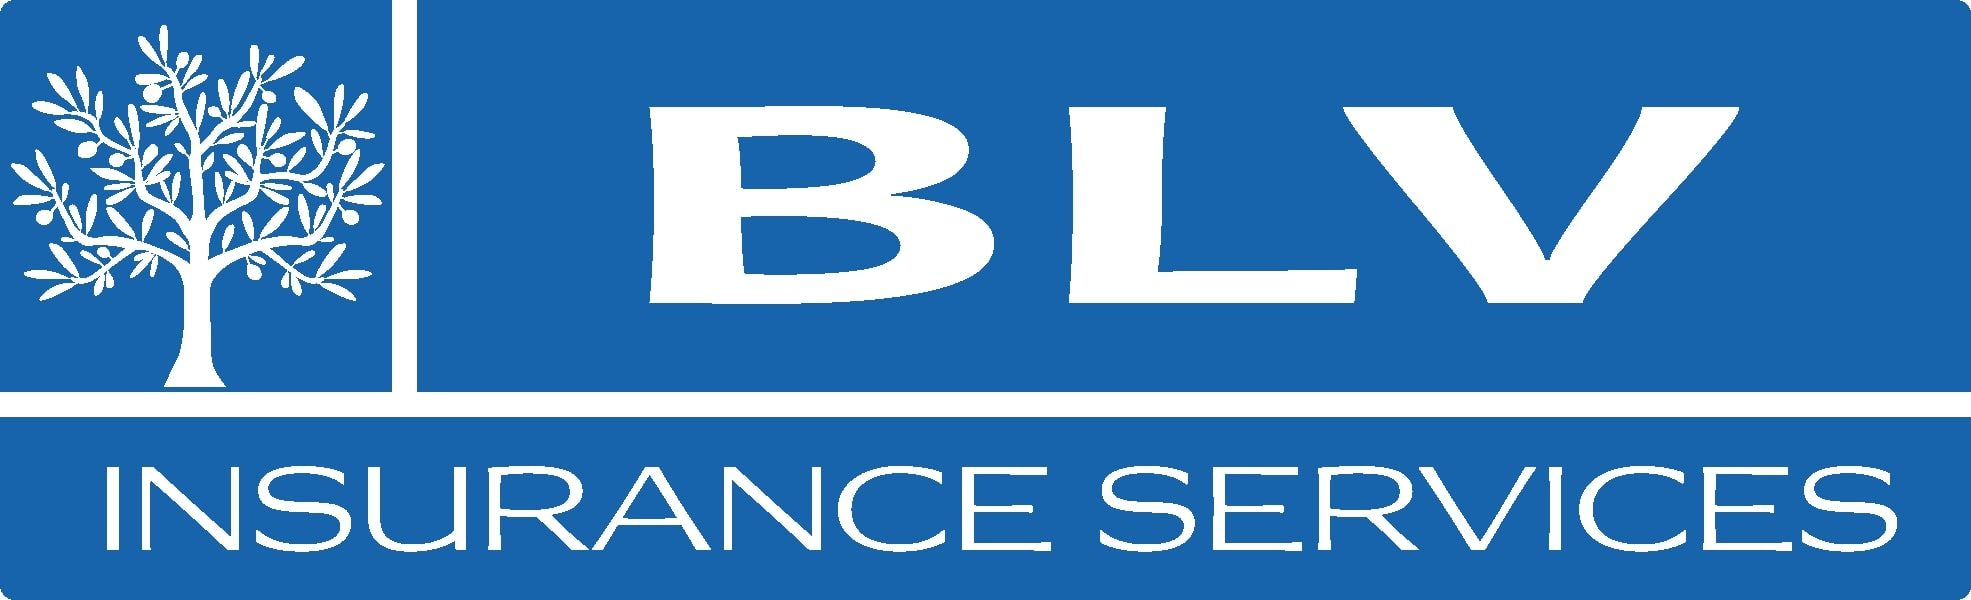 BLV Insurance Services